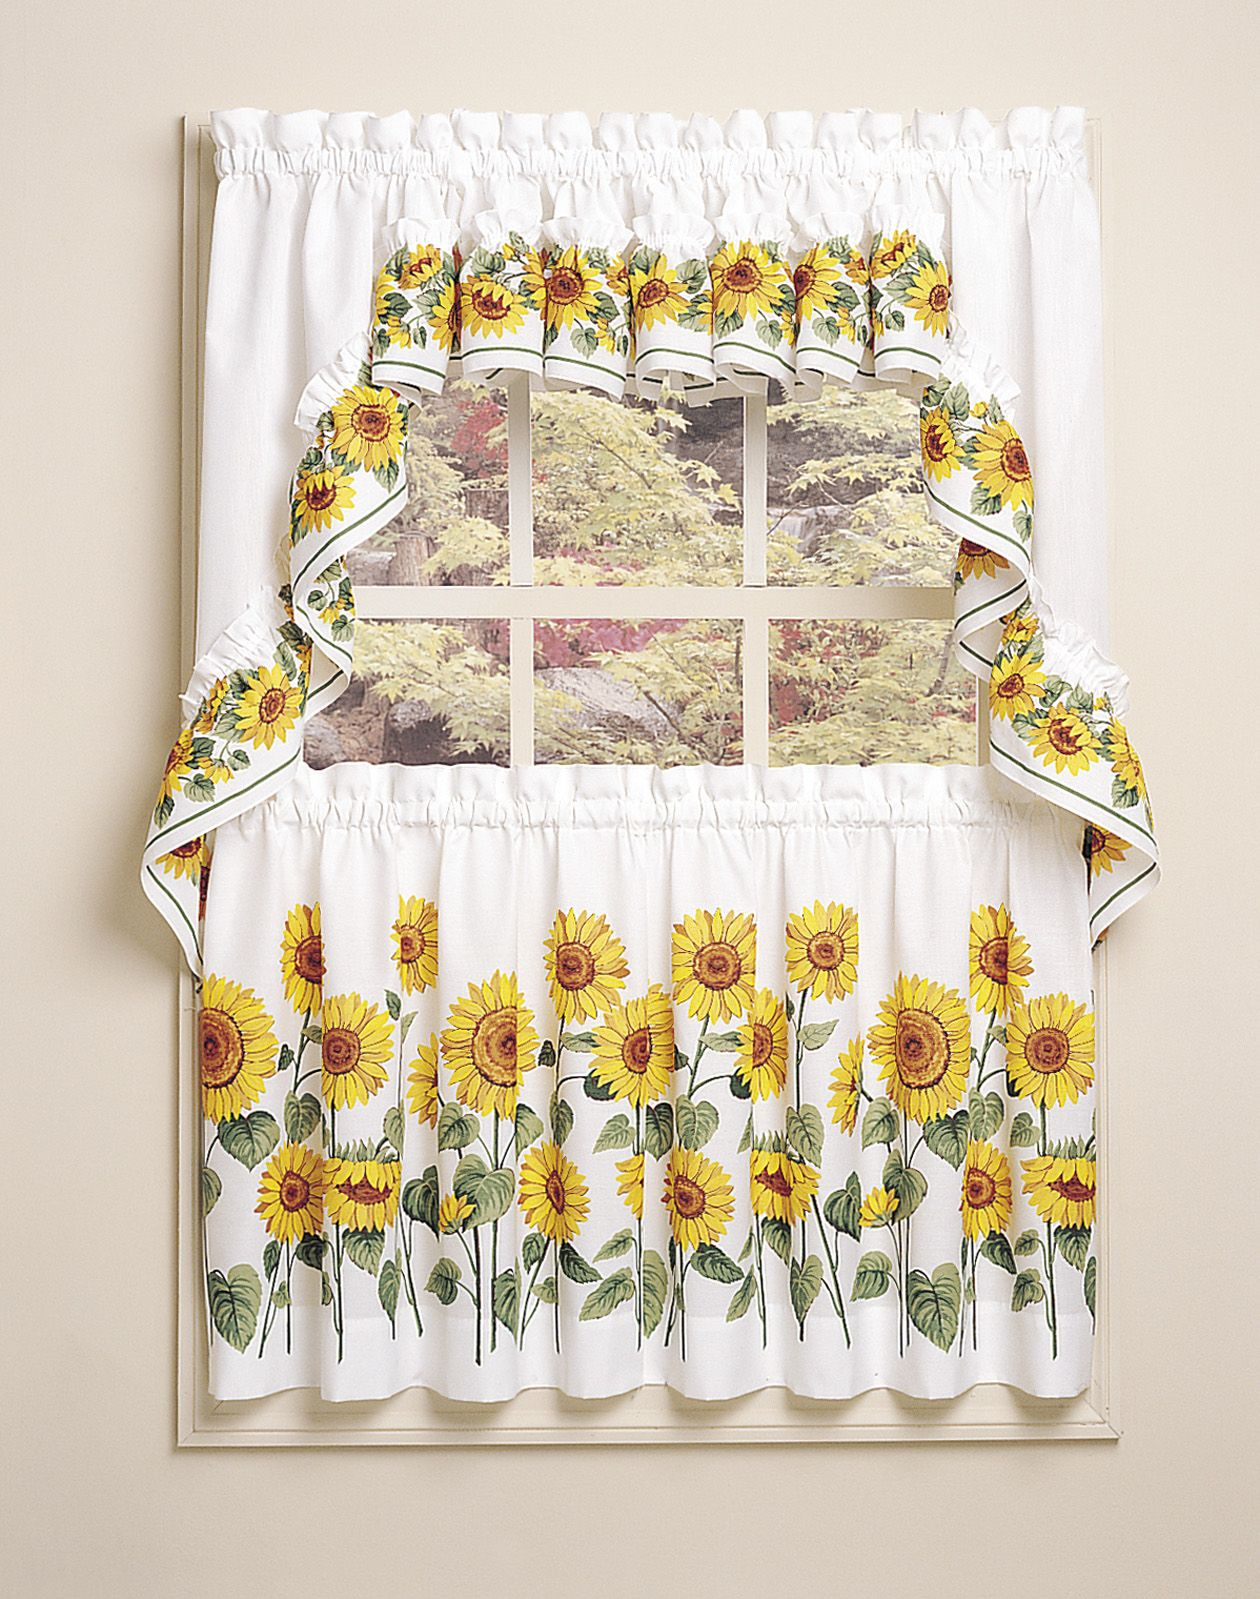 Kitchen Curtains With Sunflowers